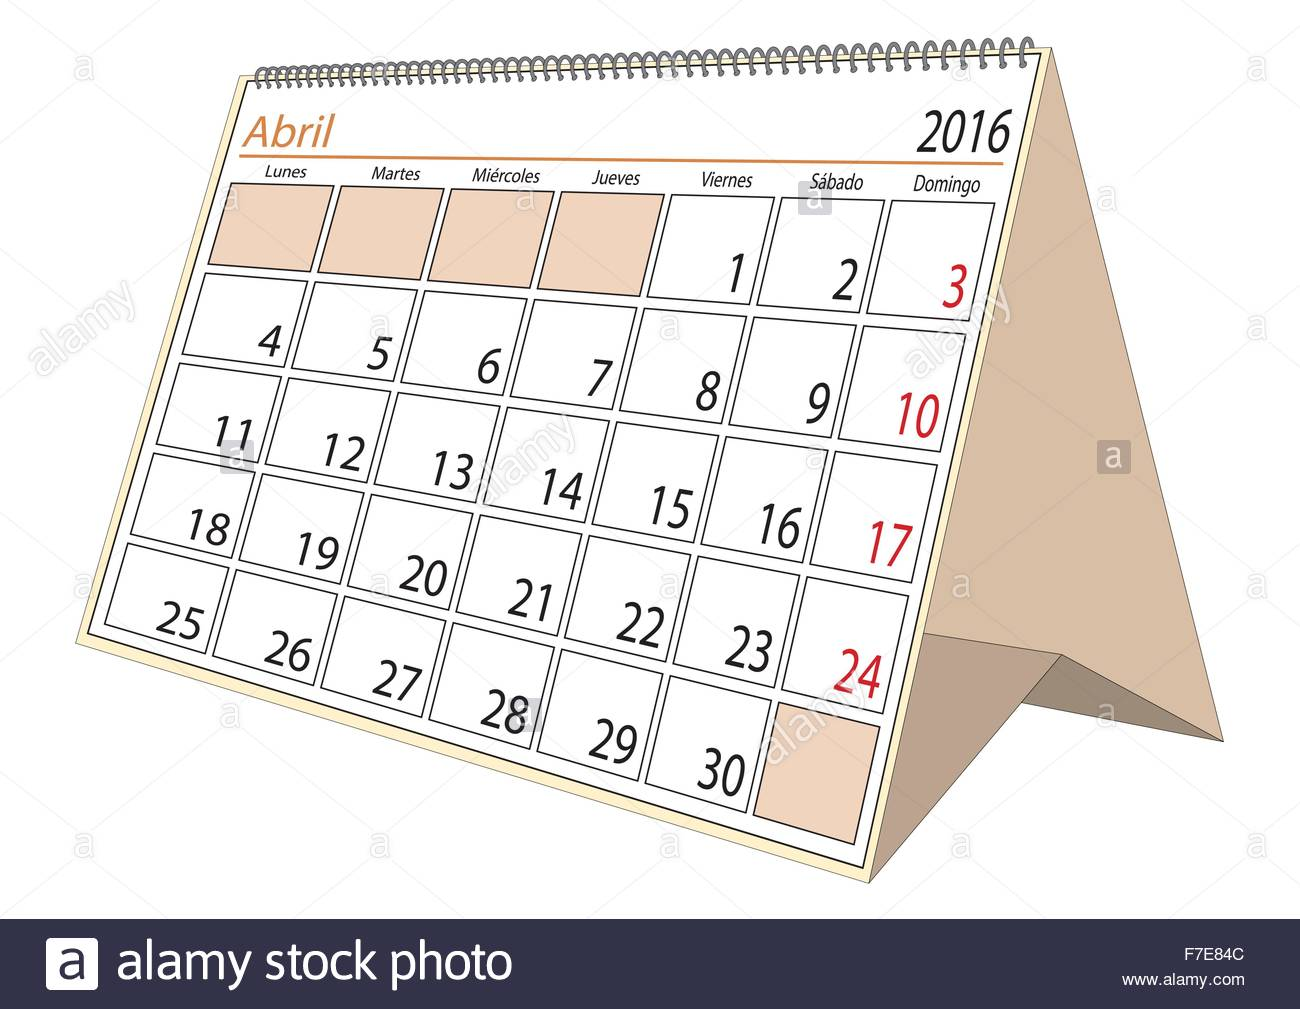 april sheet in an spanish desk calendar for year 2016 montly